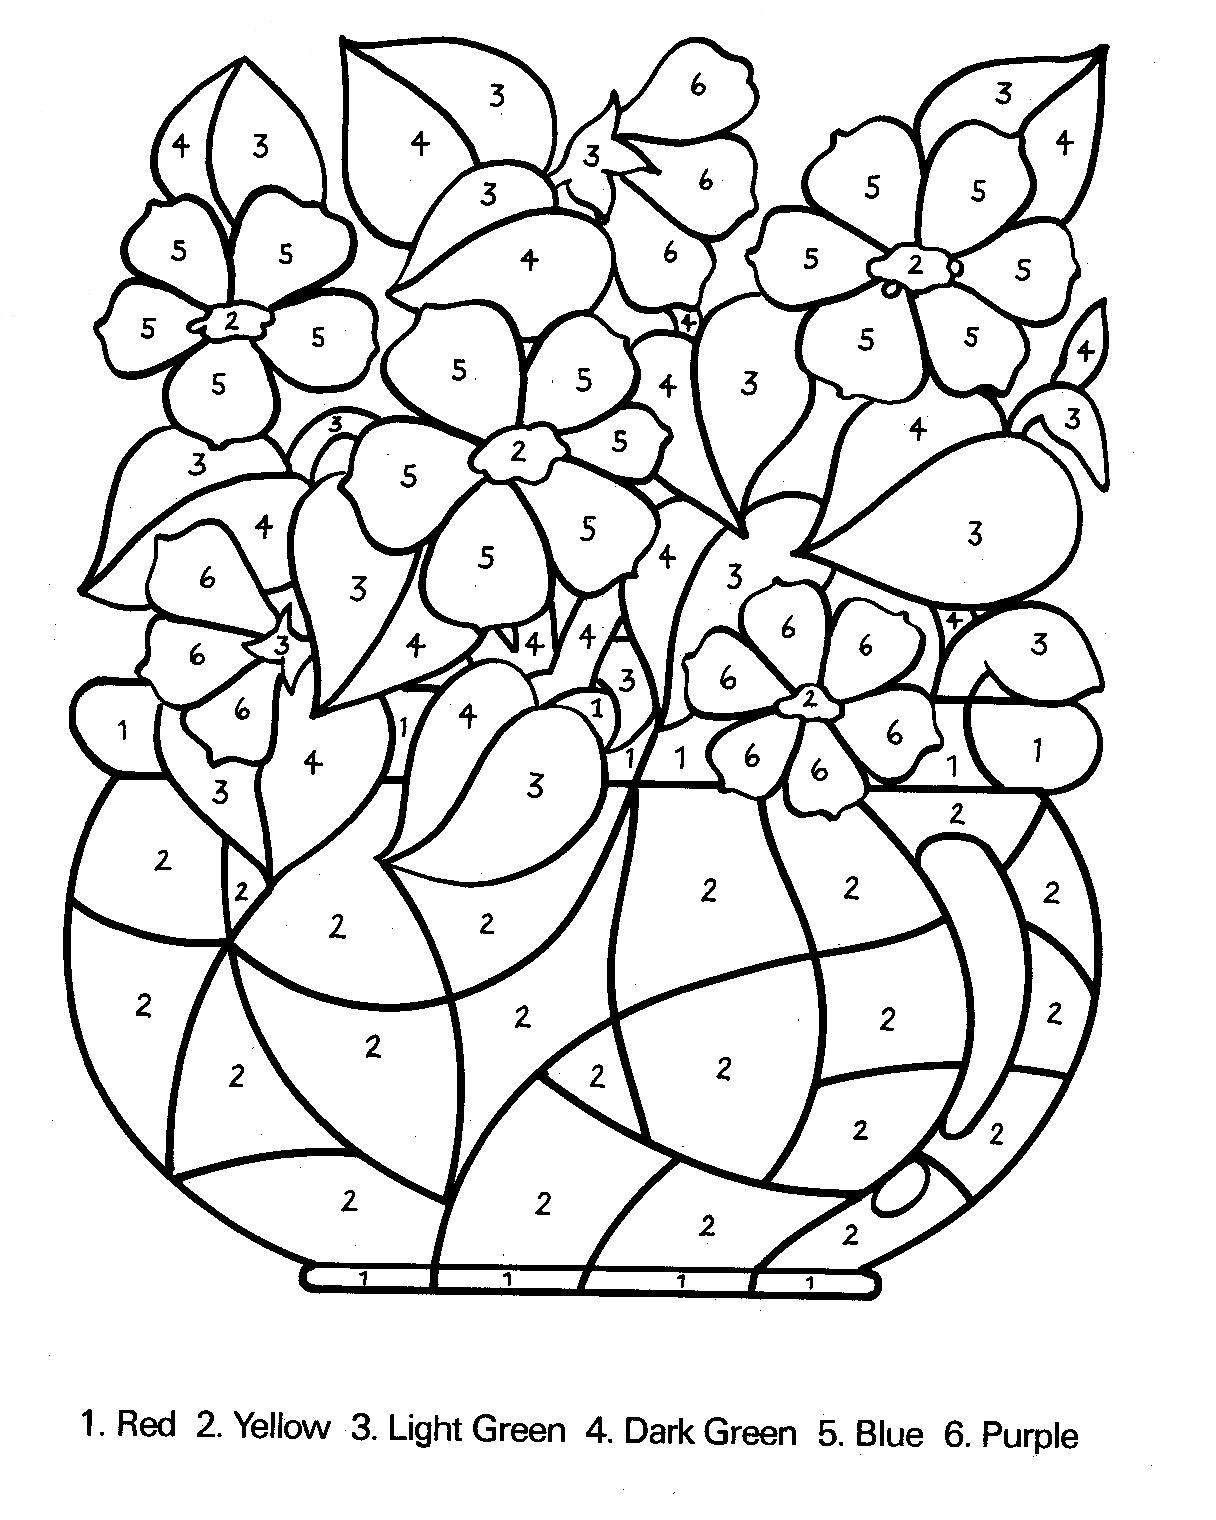 Free coloring pages spring flowers - Number Flowers Coloring Sheets Digg Stumbleupon Del Icio Us Twitter Technorati